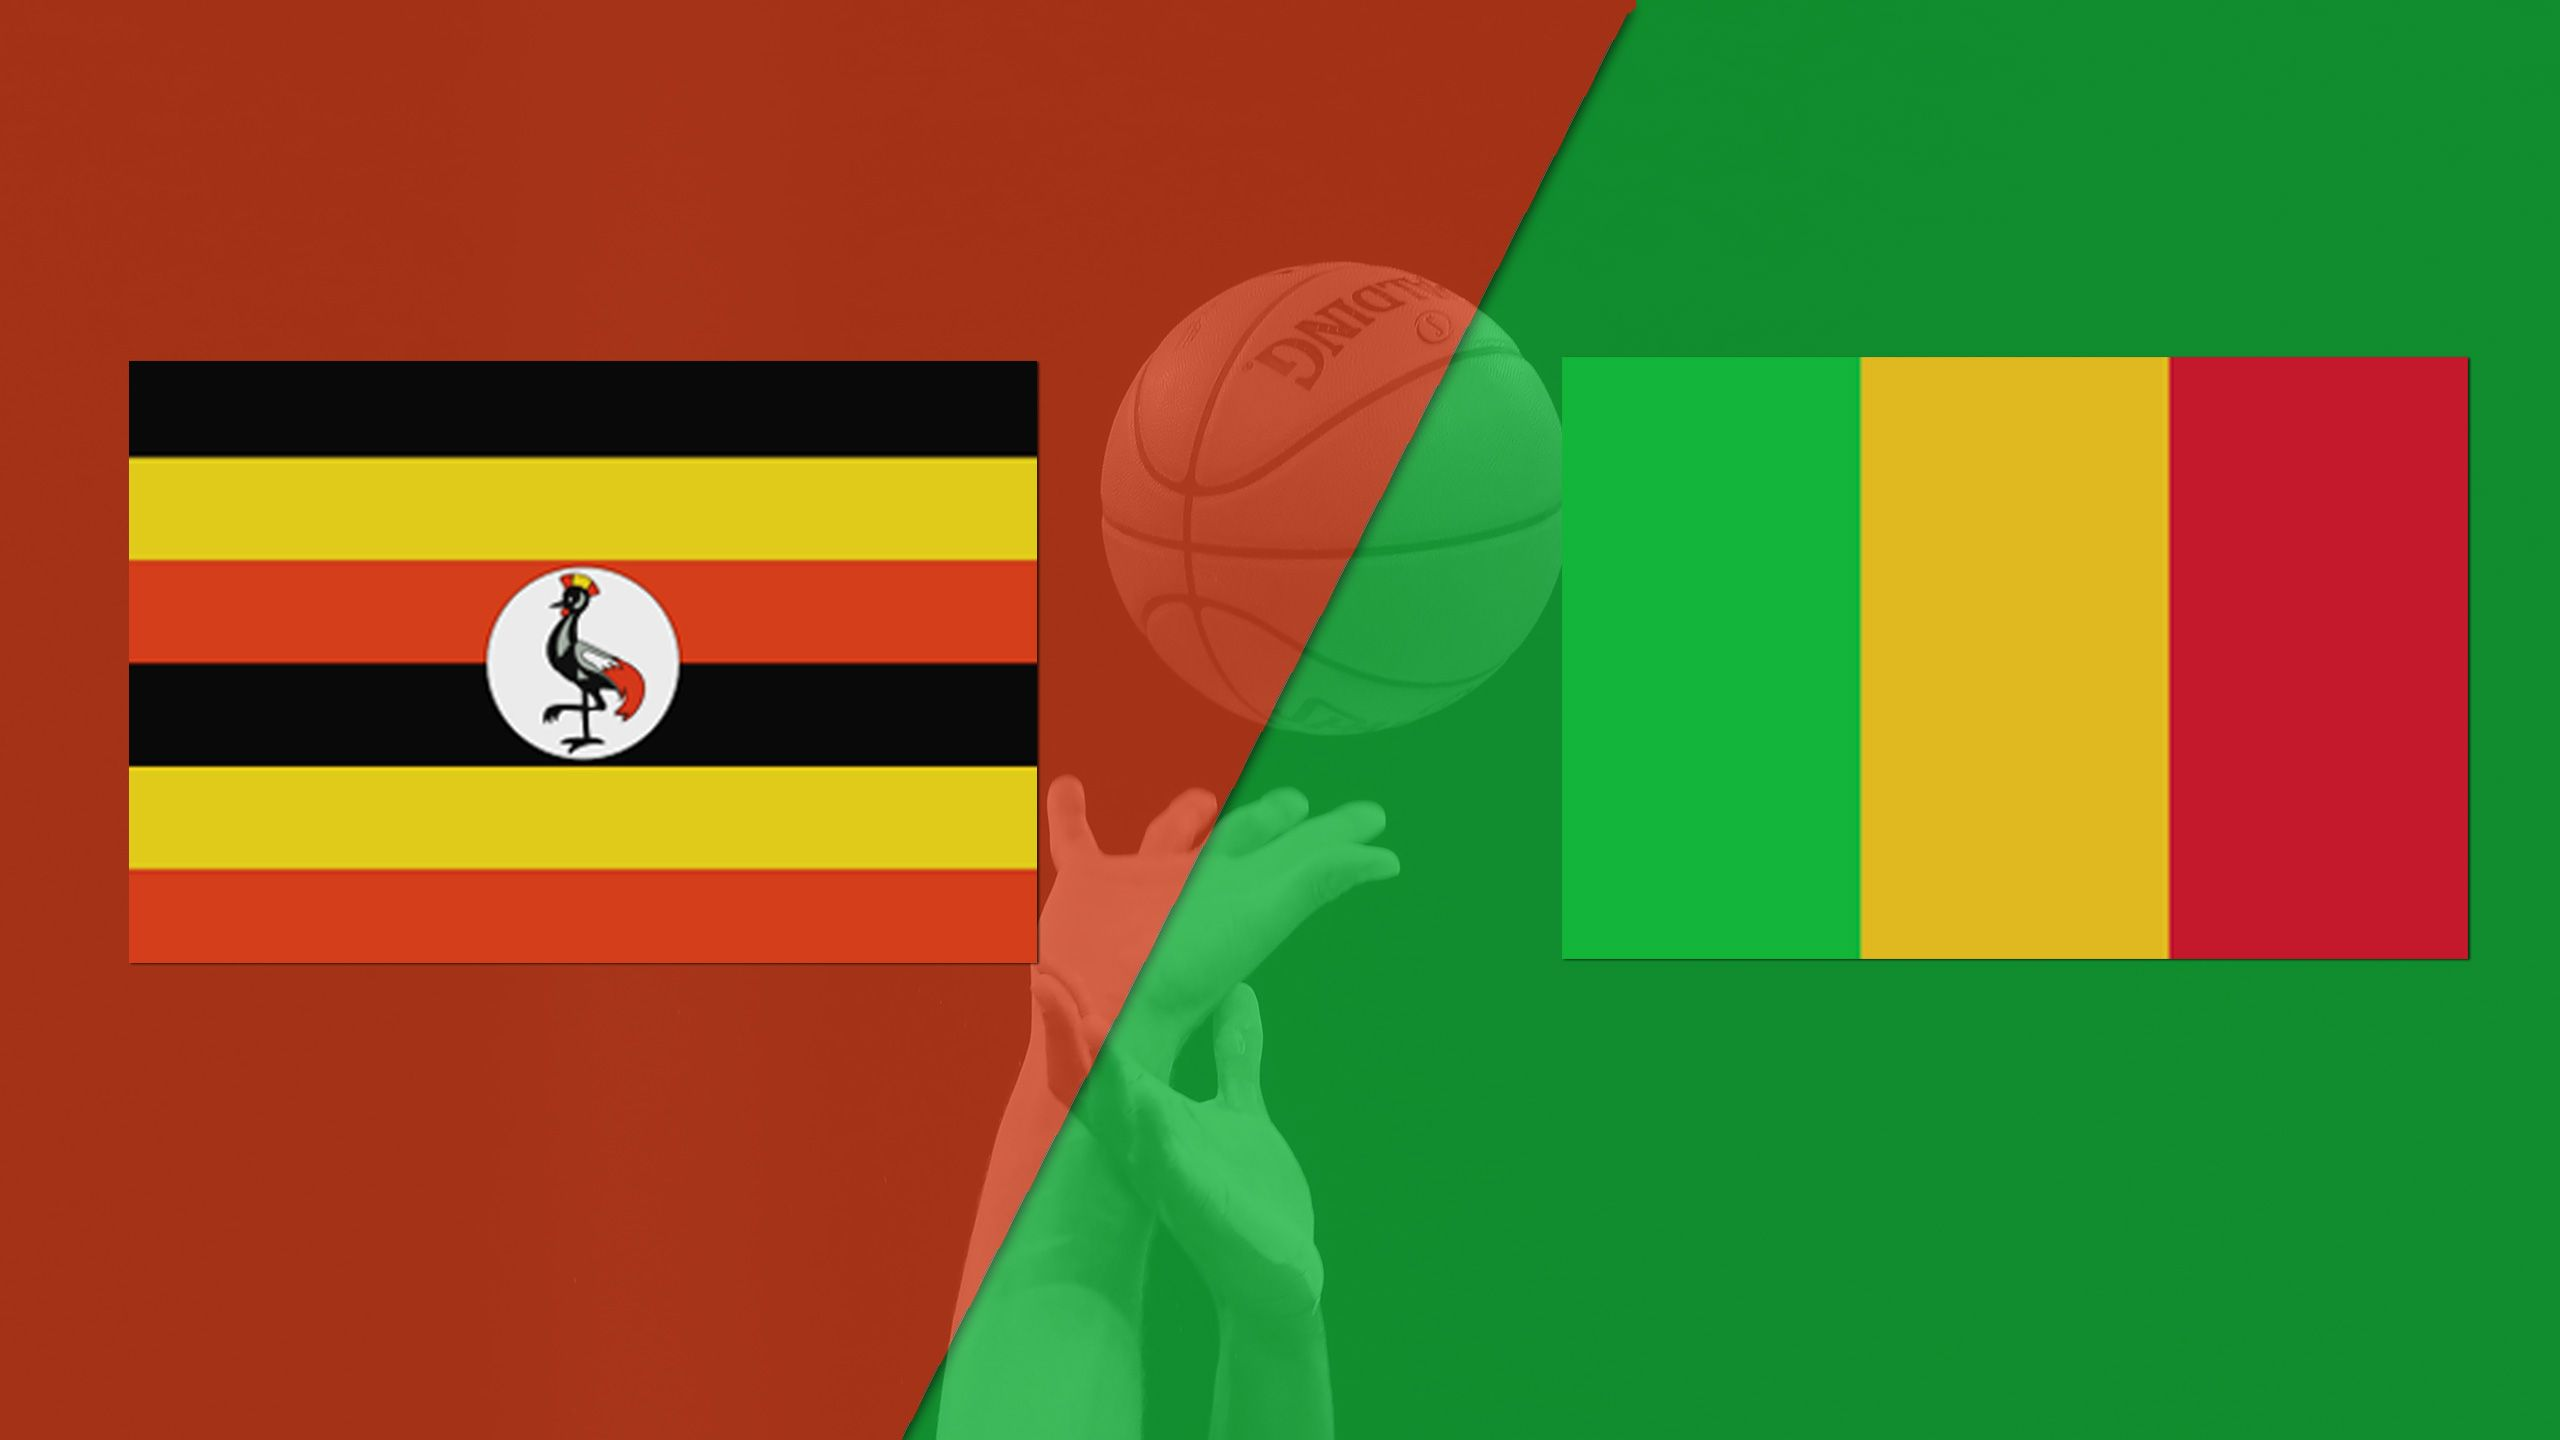 Uganda vs. Mali (FIBA World Cup 2019 Qualifier)